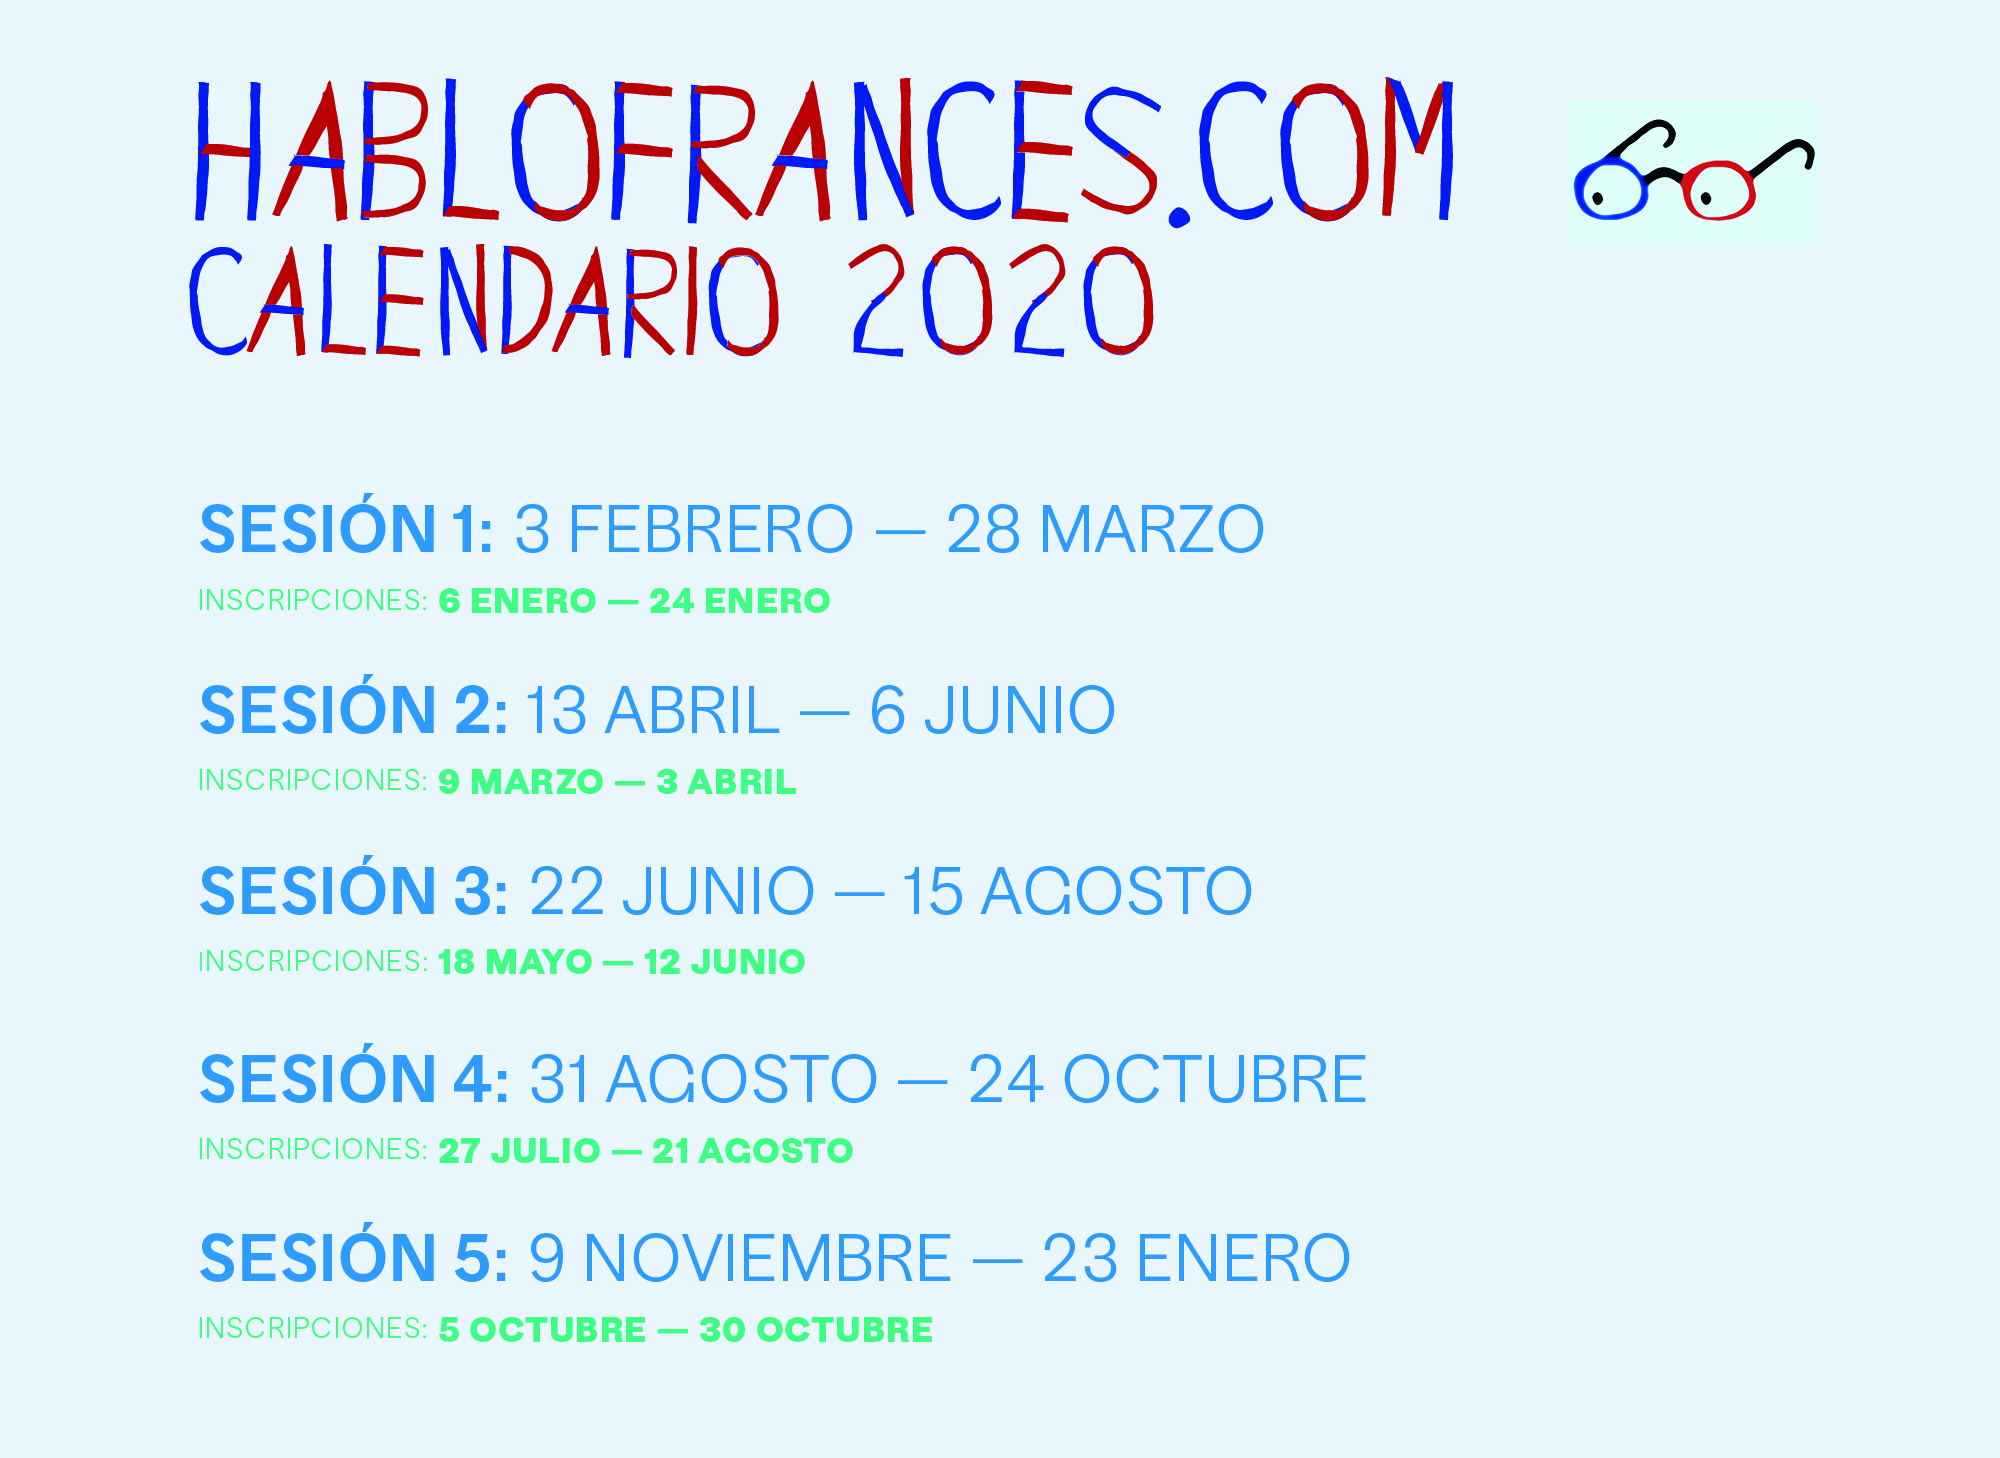 Calendario Hablo Frances 2020 V1